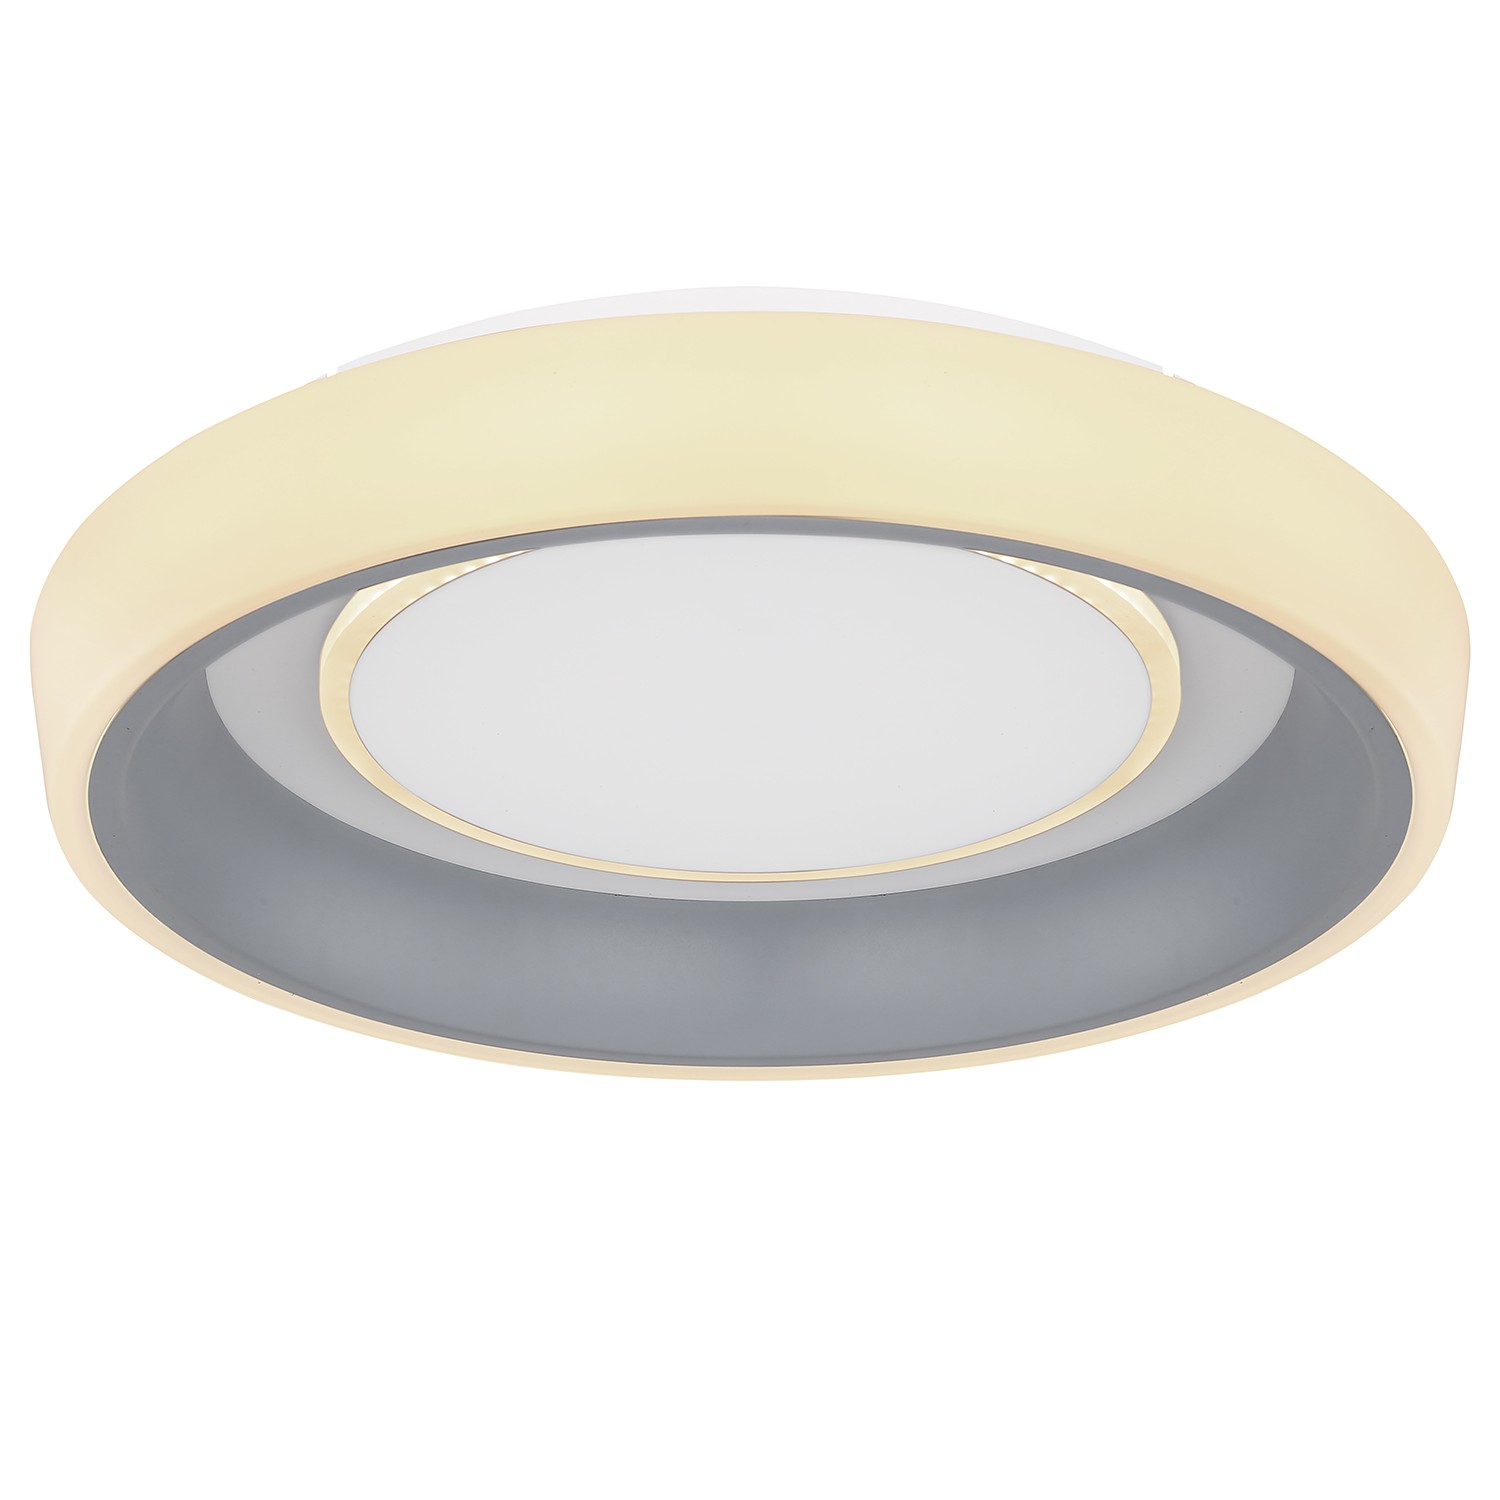 home24 LED-Deckenleuchte Tabano